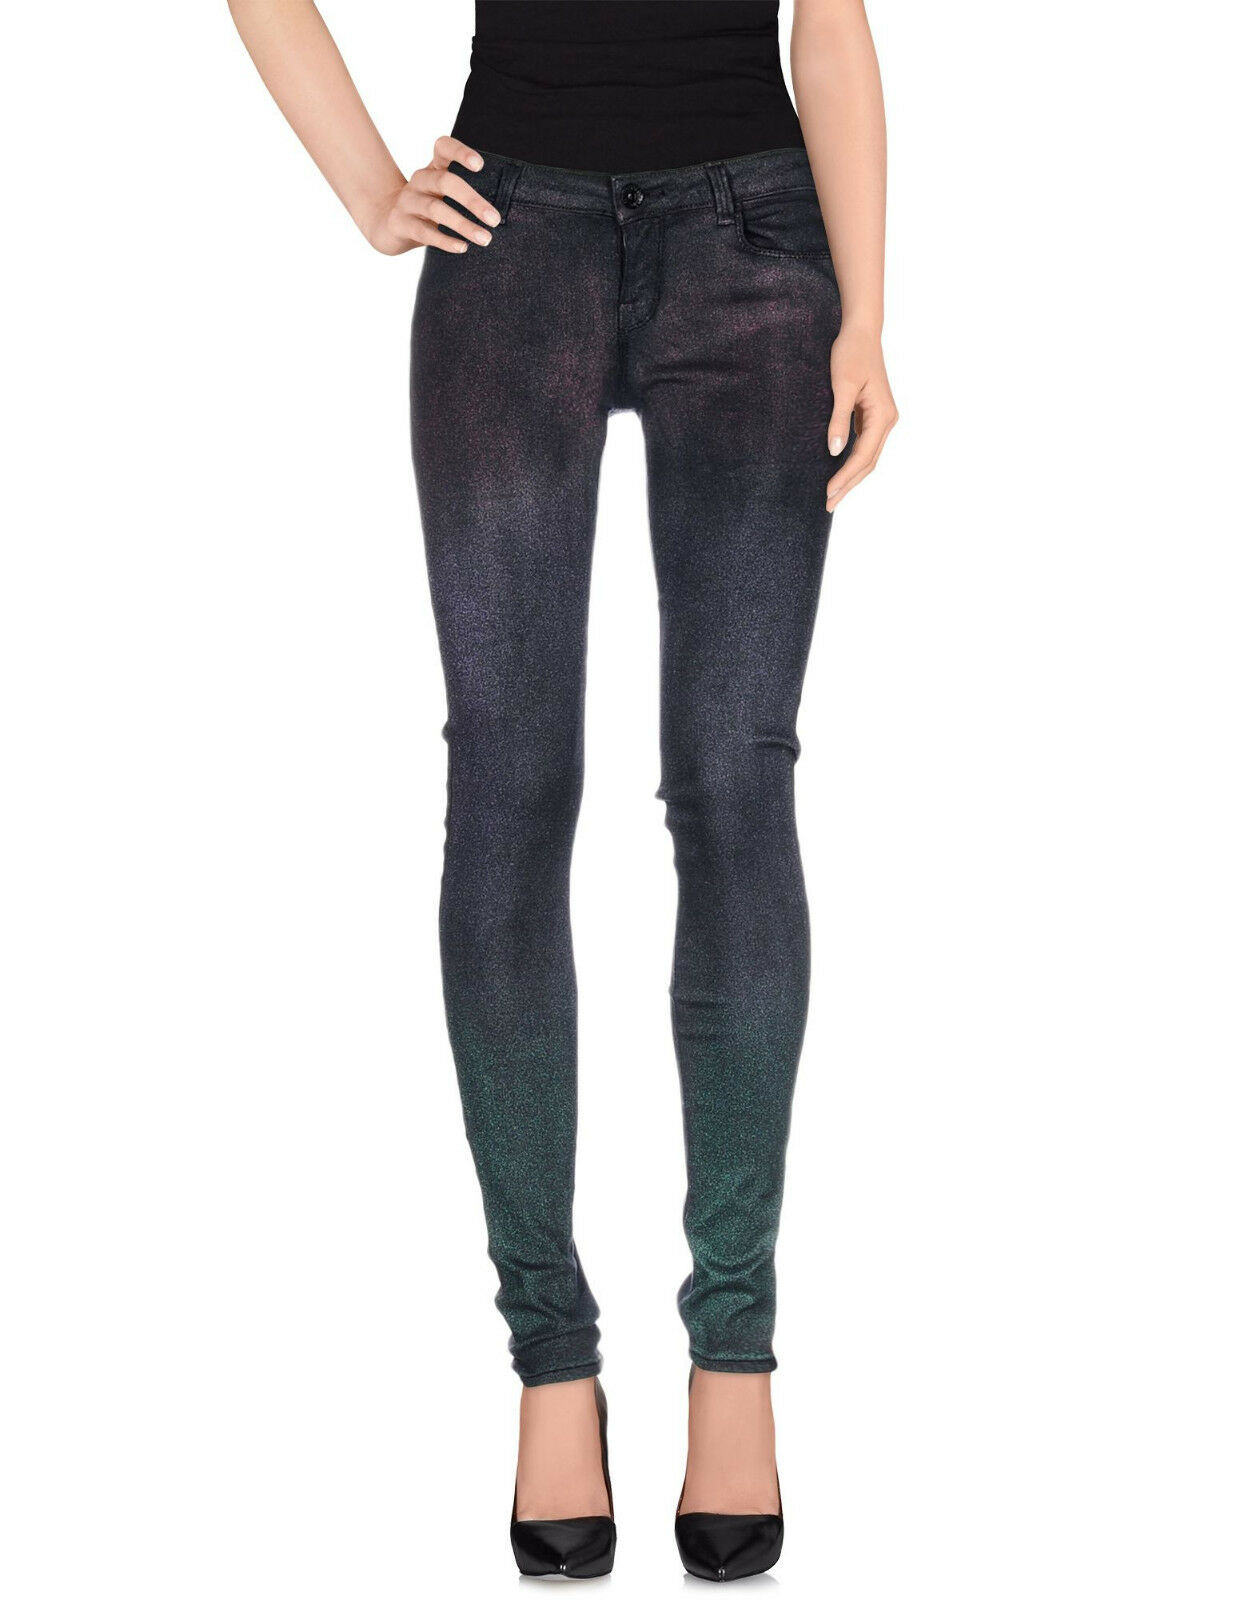 Guess Starlet Skinny Stretch Performance Denim Pants Lamé Shimmering Size L NWT